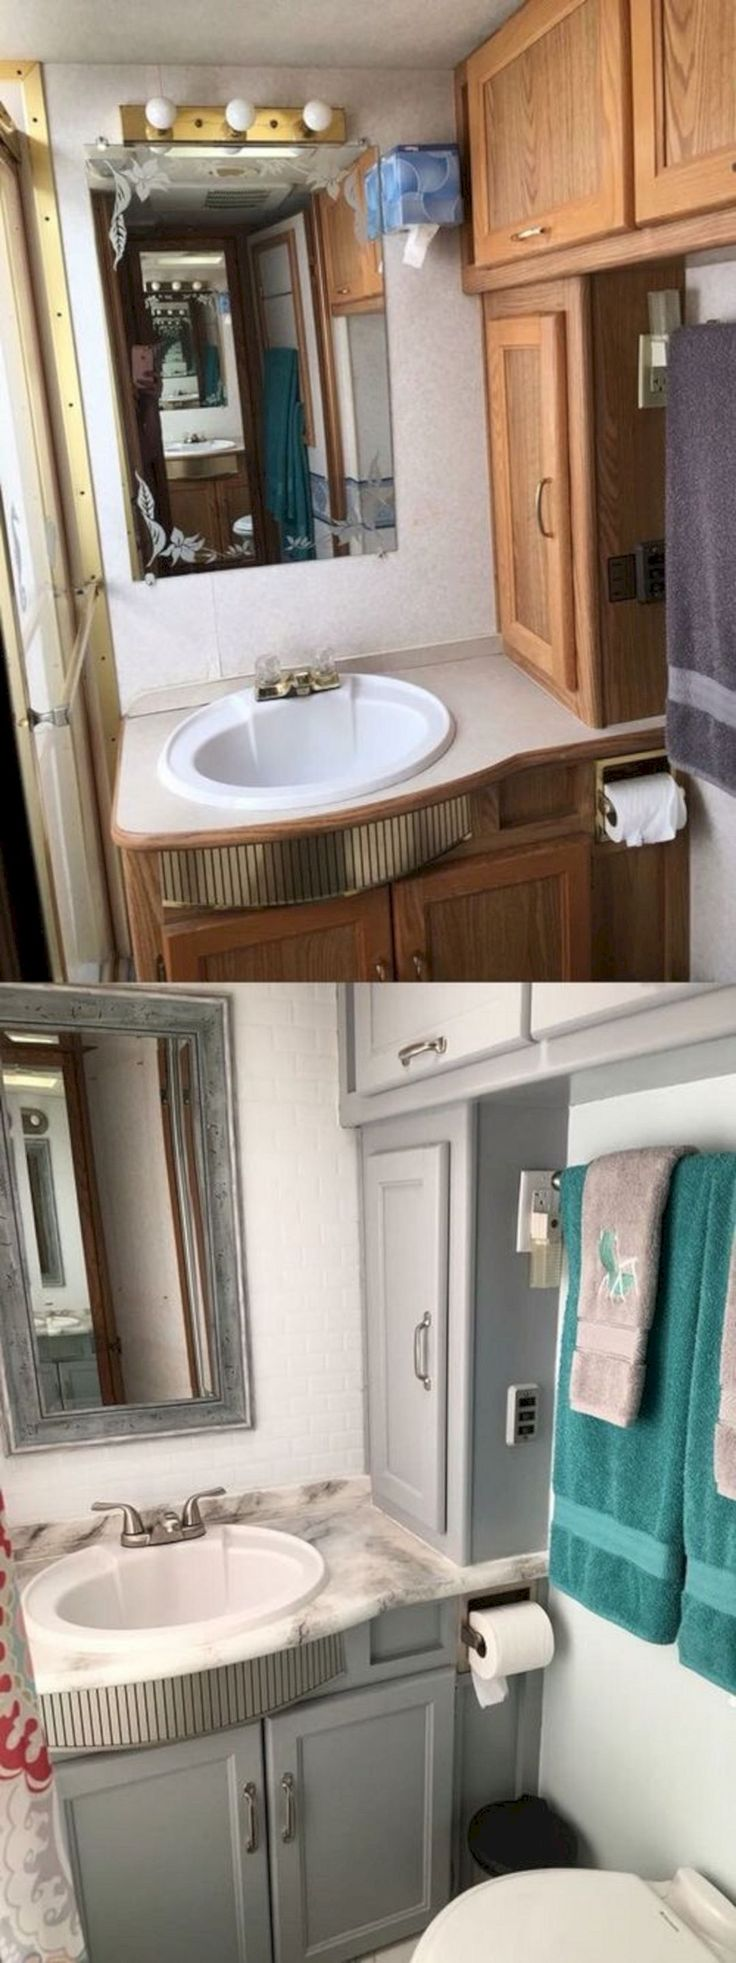 Top Easy RV Remodels On A Budget: 45+ Before And After Pictures http://goodsgn.com/rv-camper/easy-rv-remodels-on-a-budget-45-before-and-after-pictures/